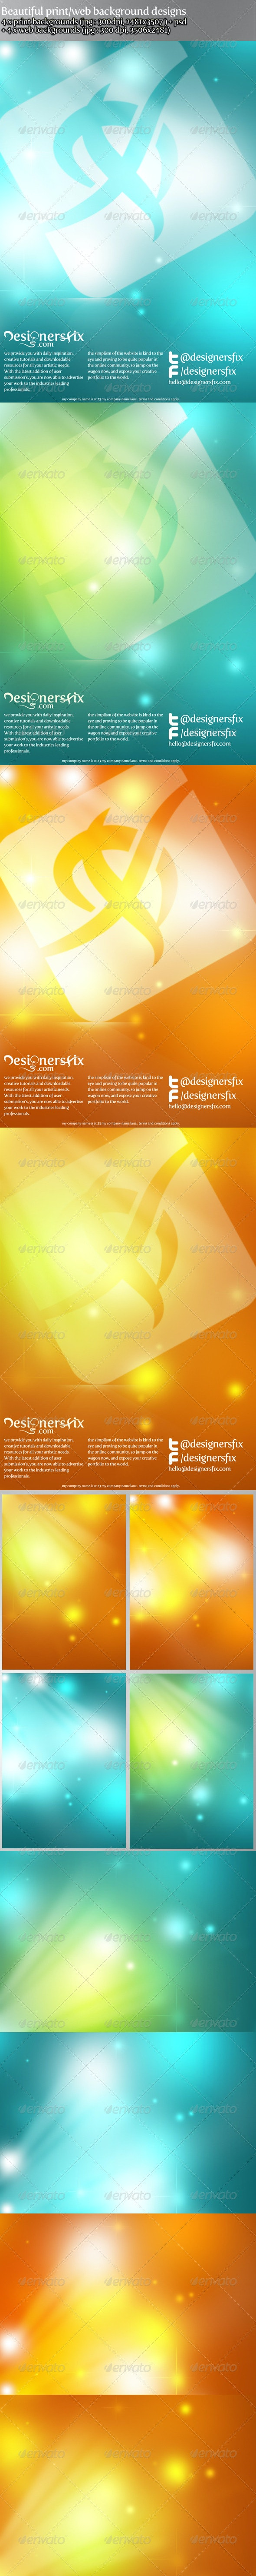 Soft Abstract Print & Web Background / Template - Graphics